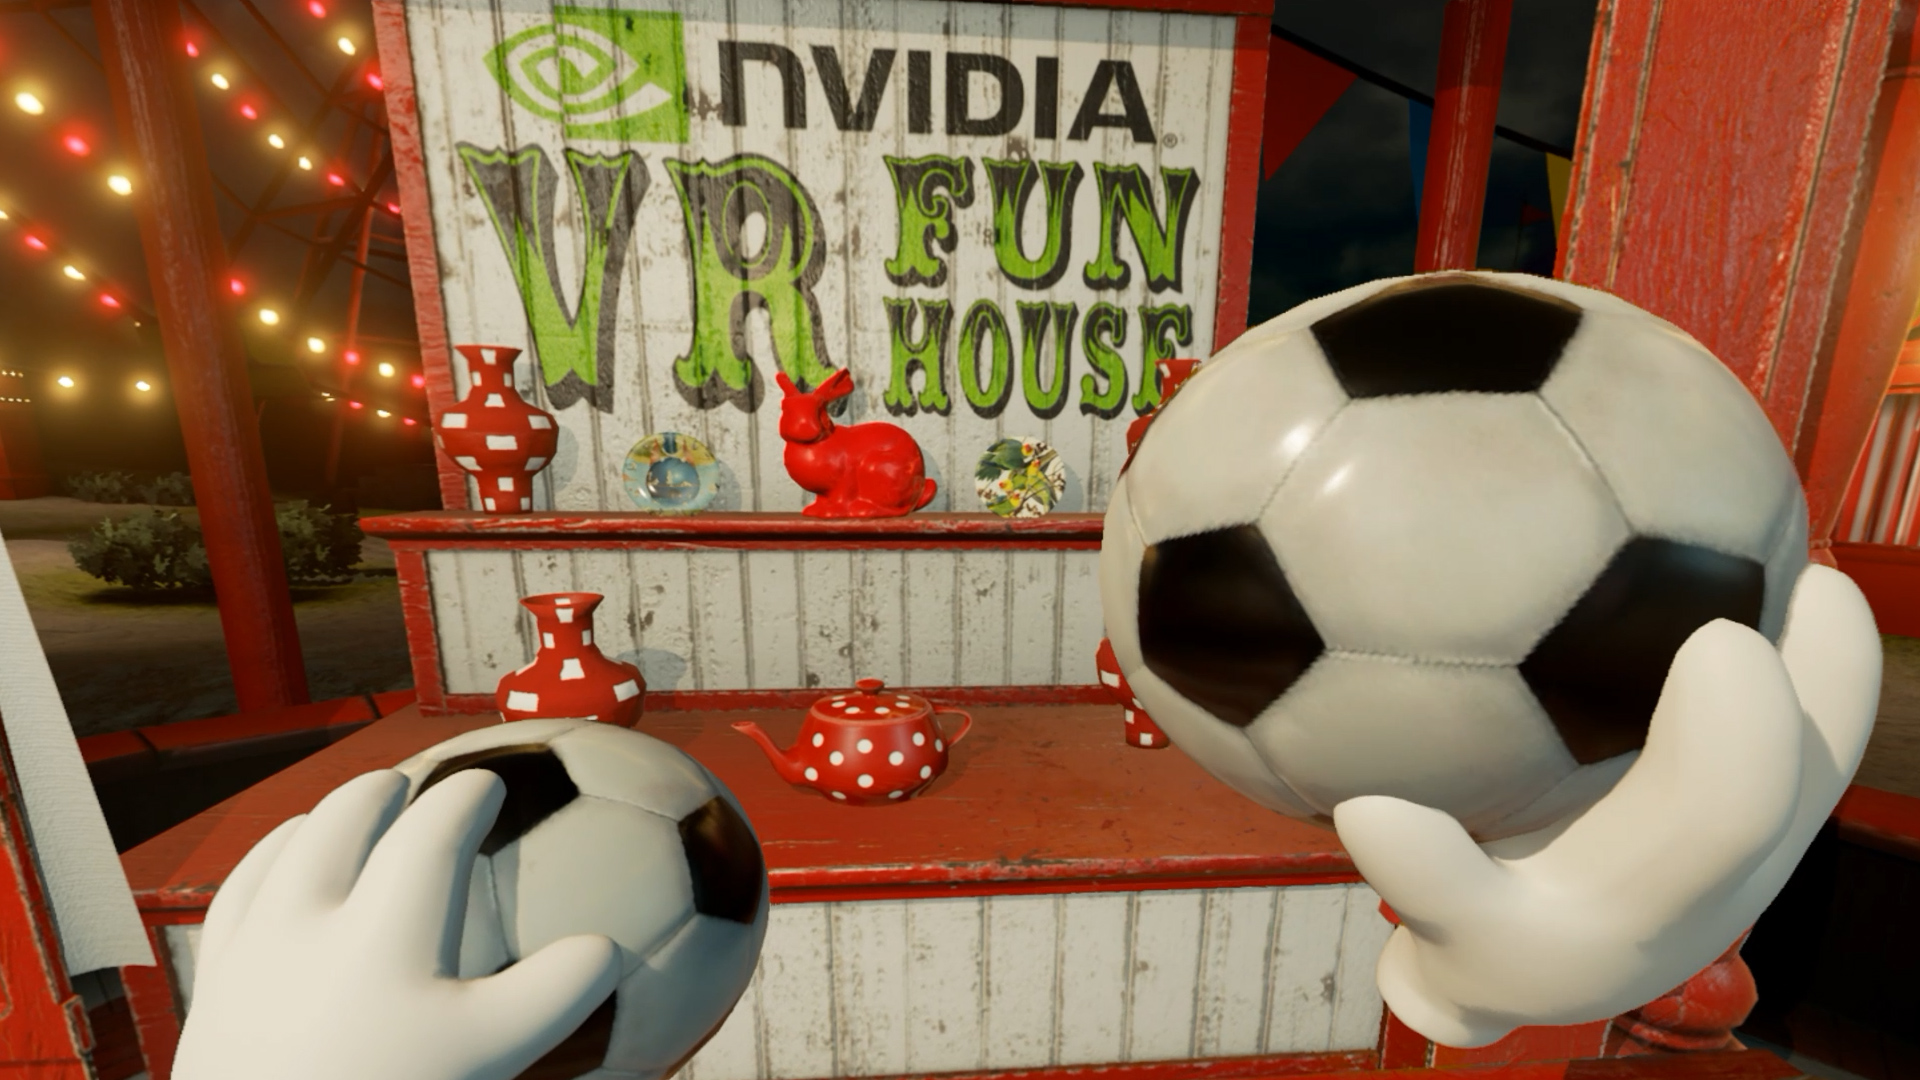 NVIDIA® VR Funhouse on Steam